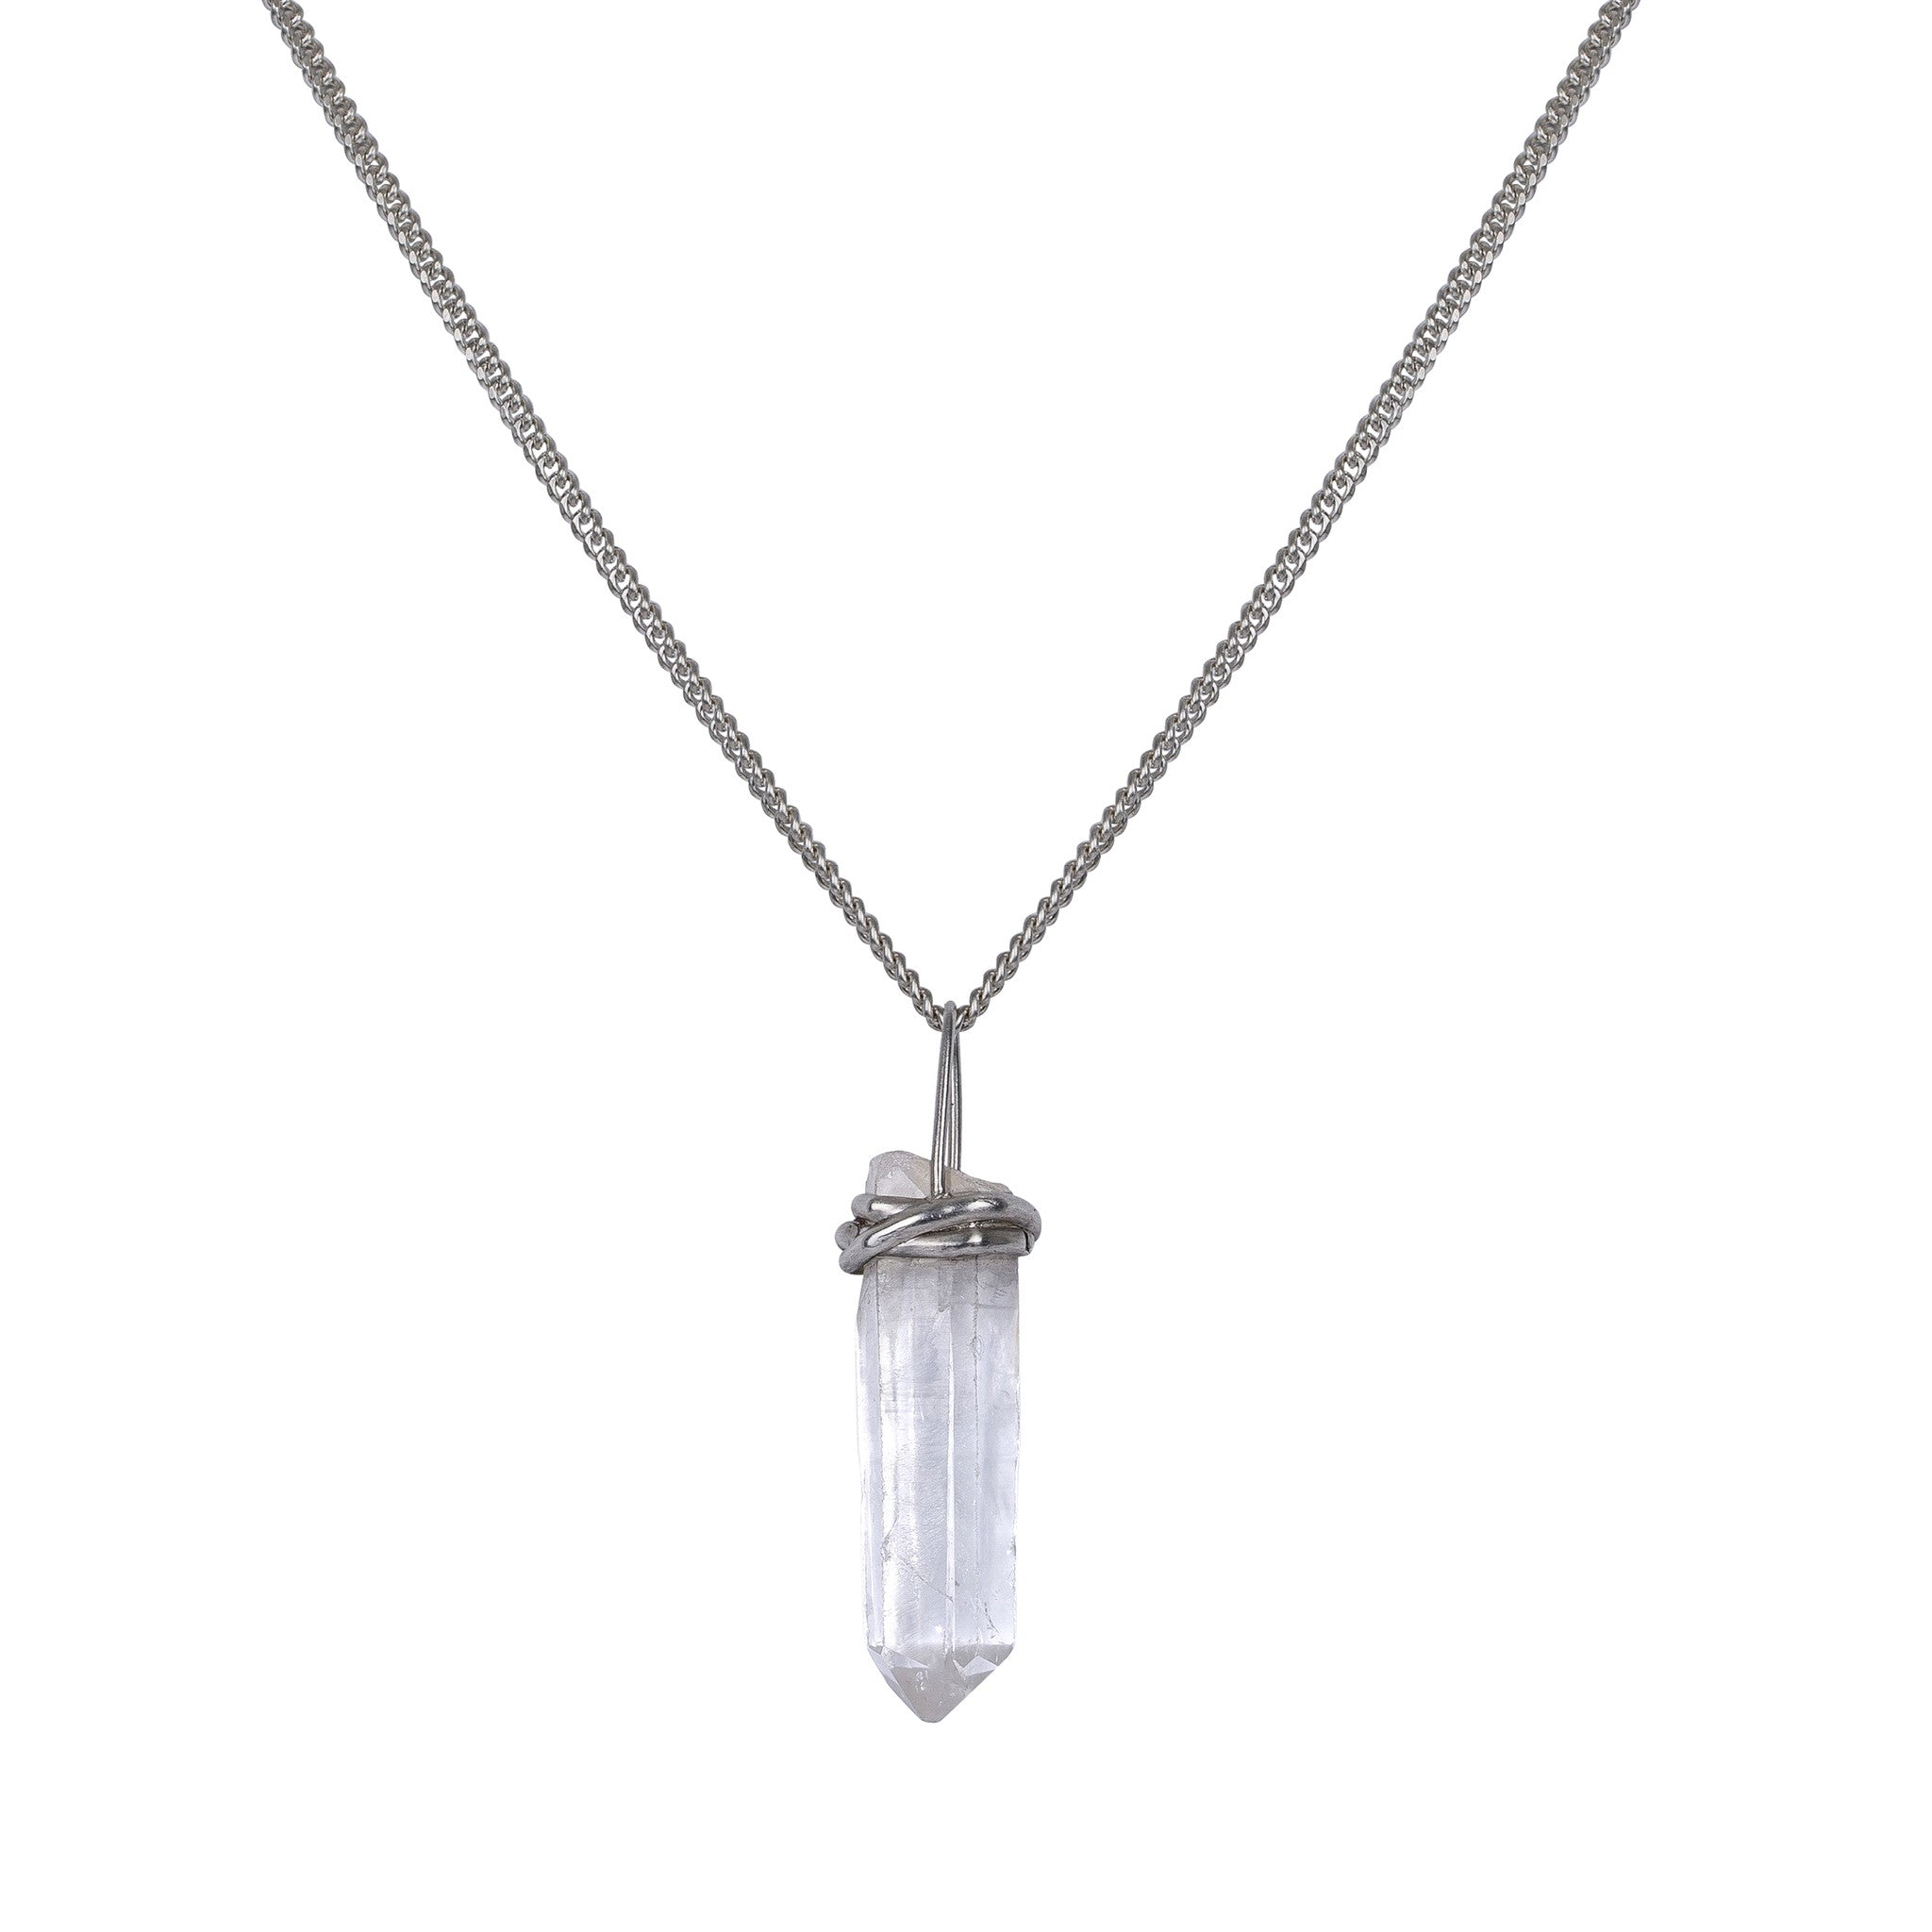 Silver necklace with crystal pendant